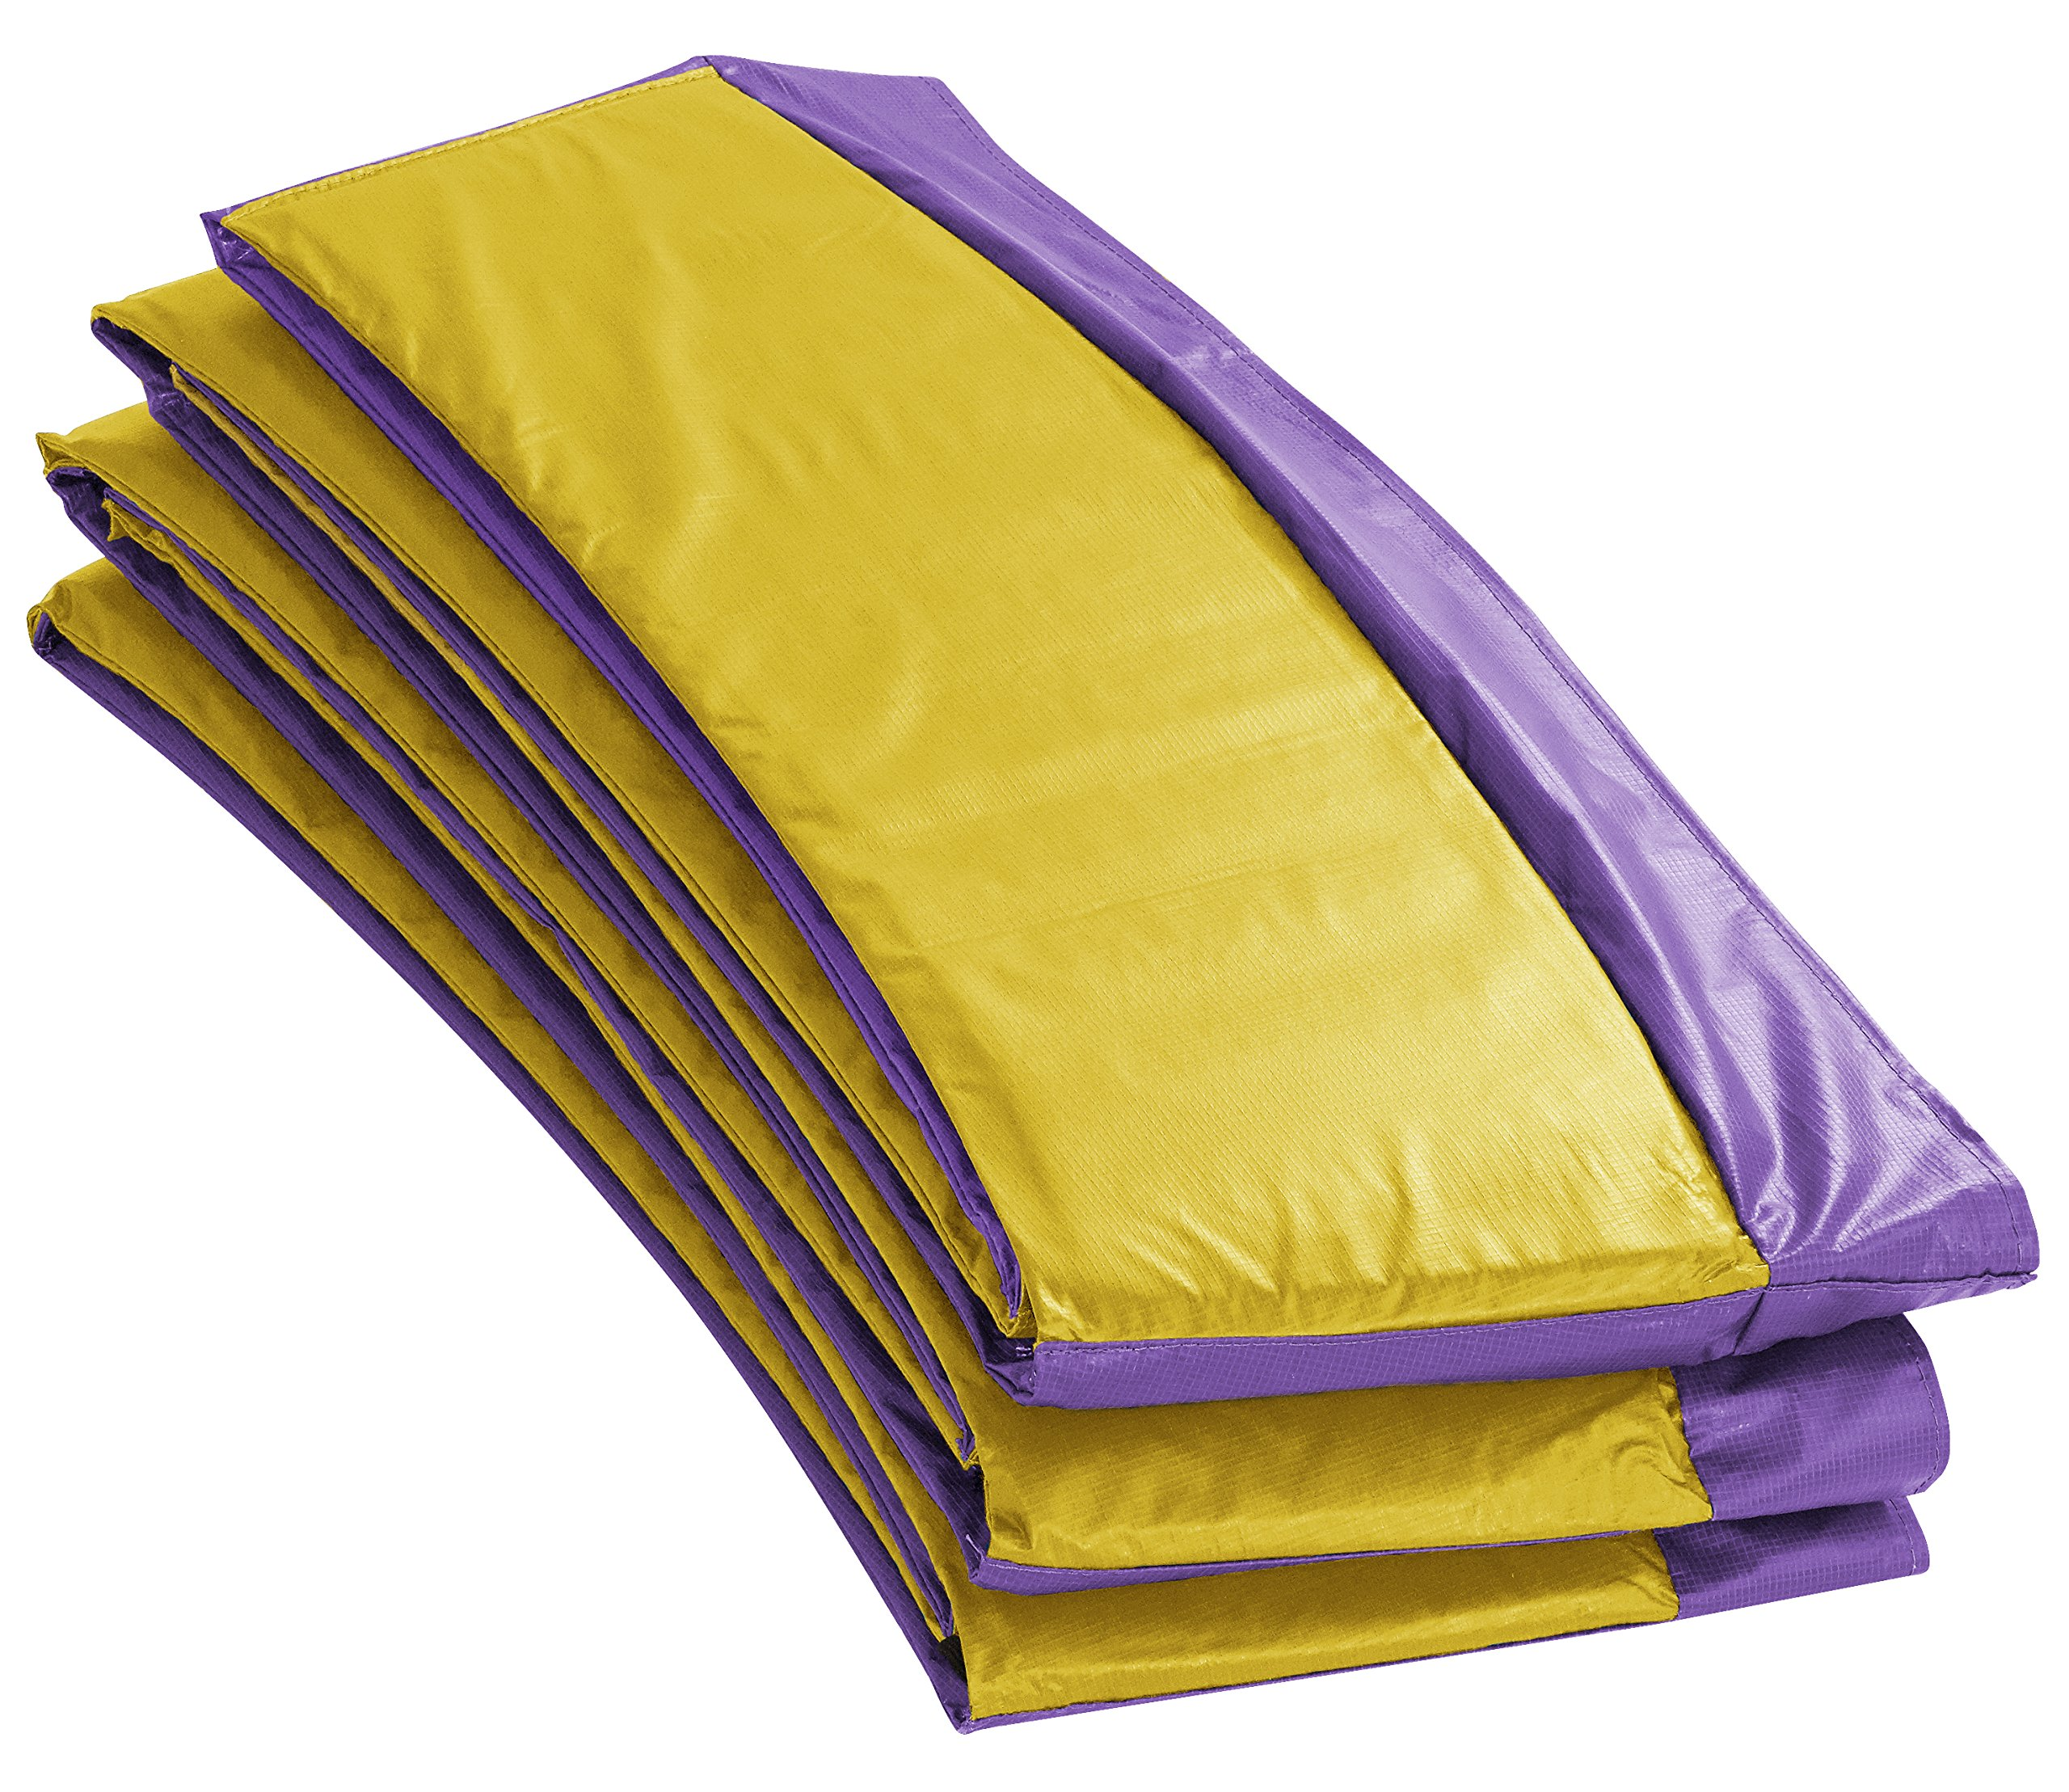 Upper Bounce UBPAD-S-9-PY Super Trampoline Replacement Safety Pad (Spring Cover) Fits for 9'. Round Frames - Purple/Yellow by Upper Bounce